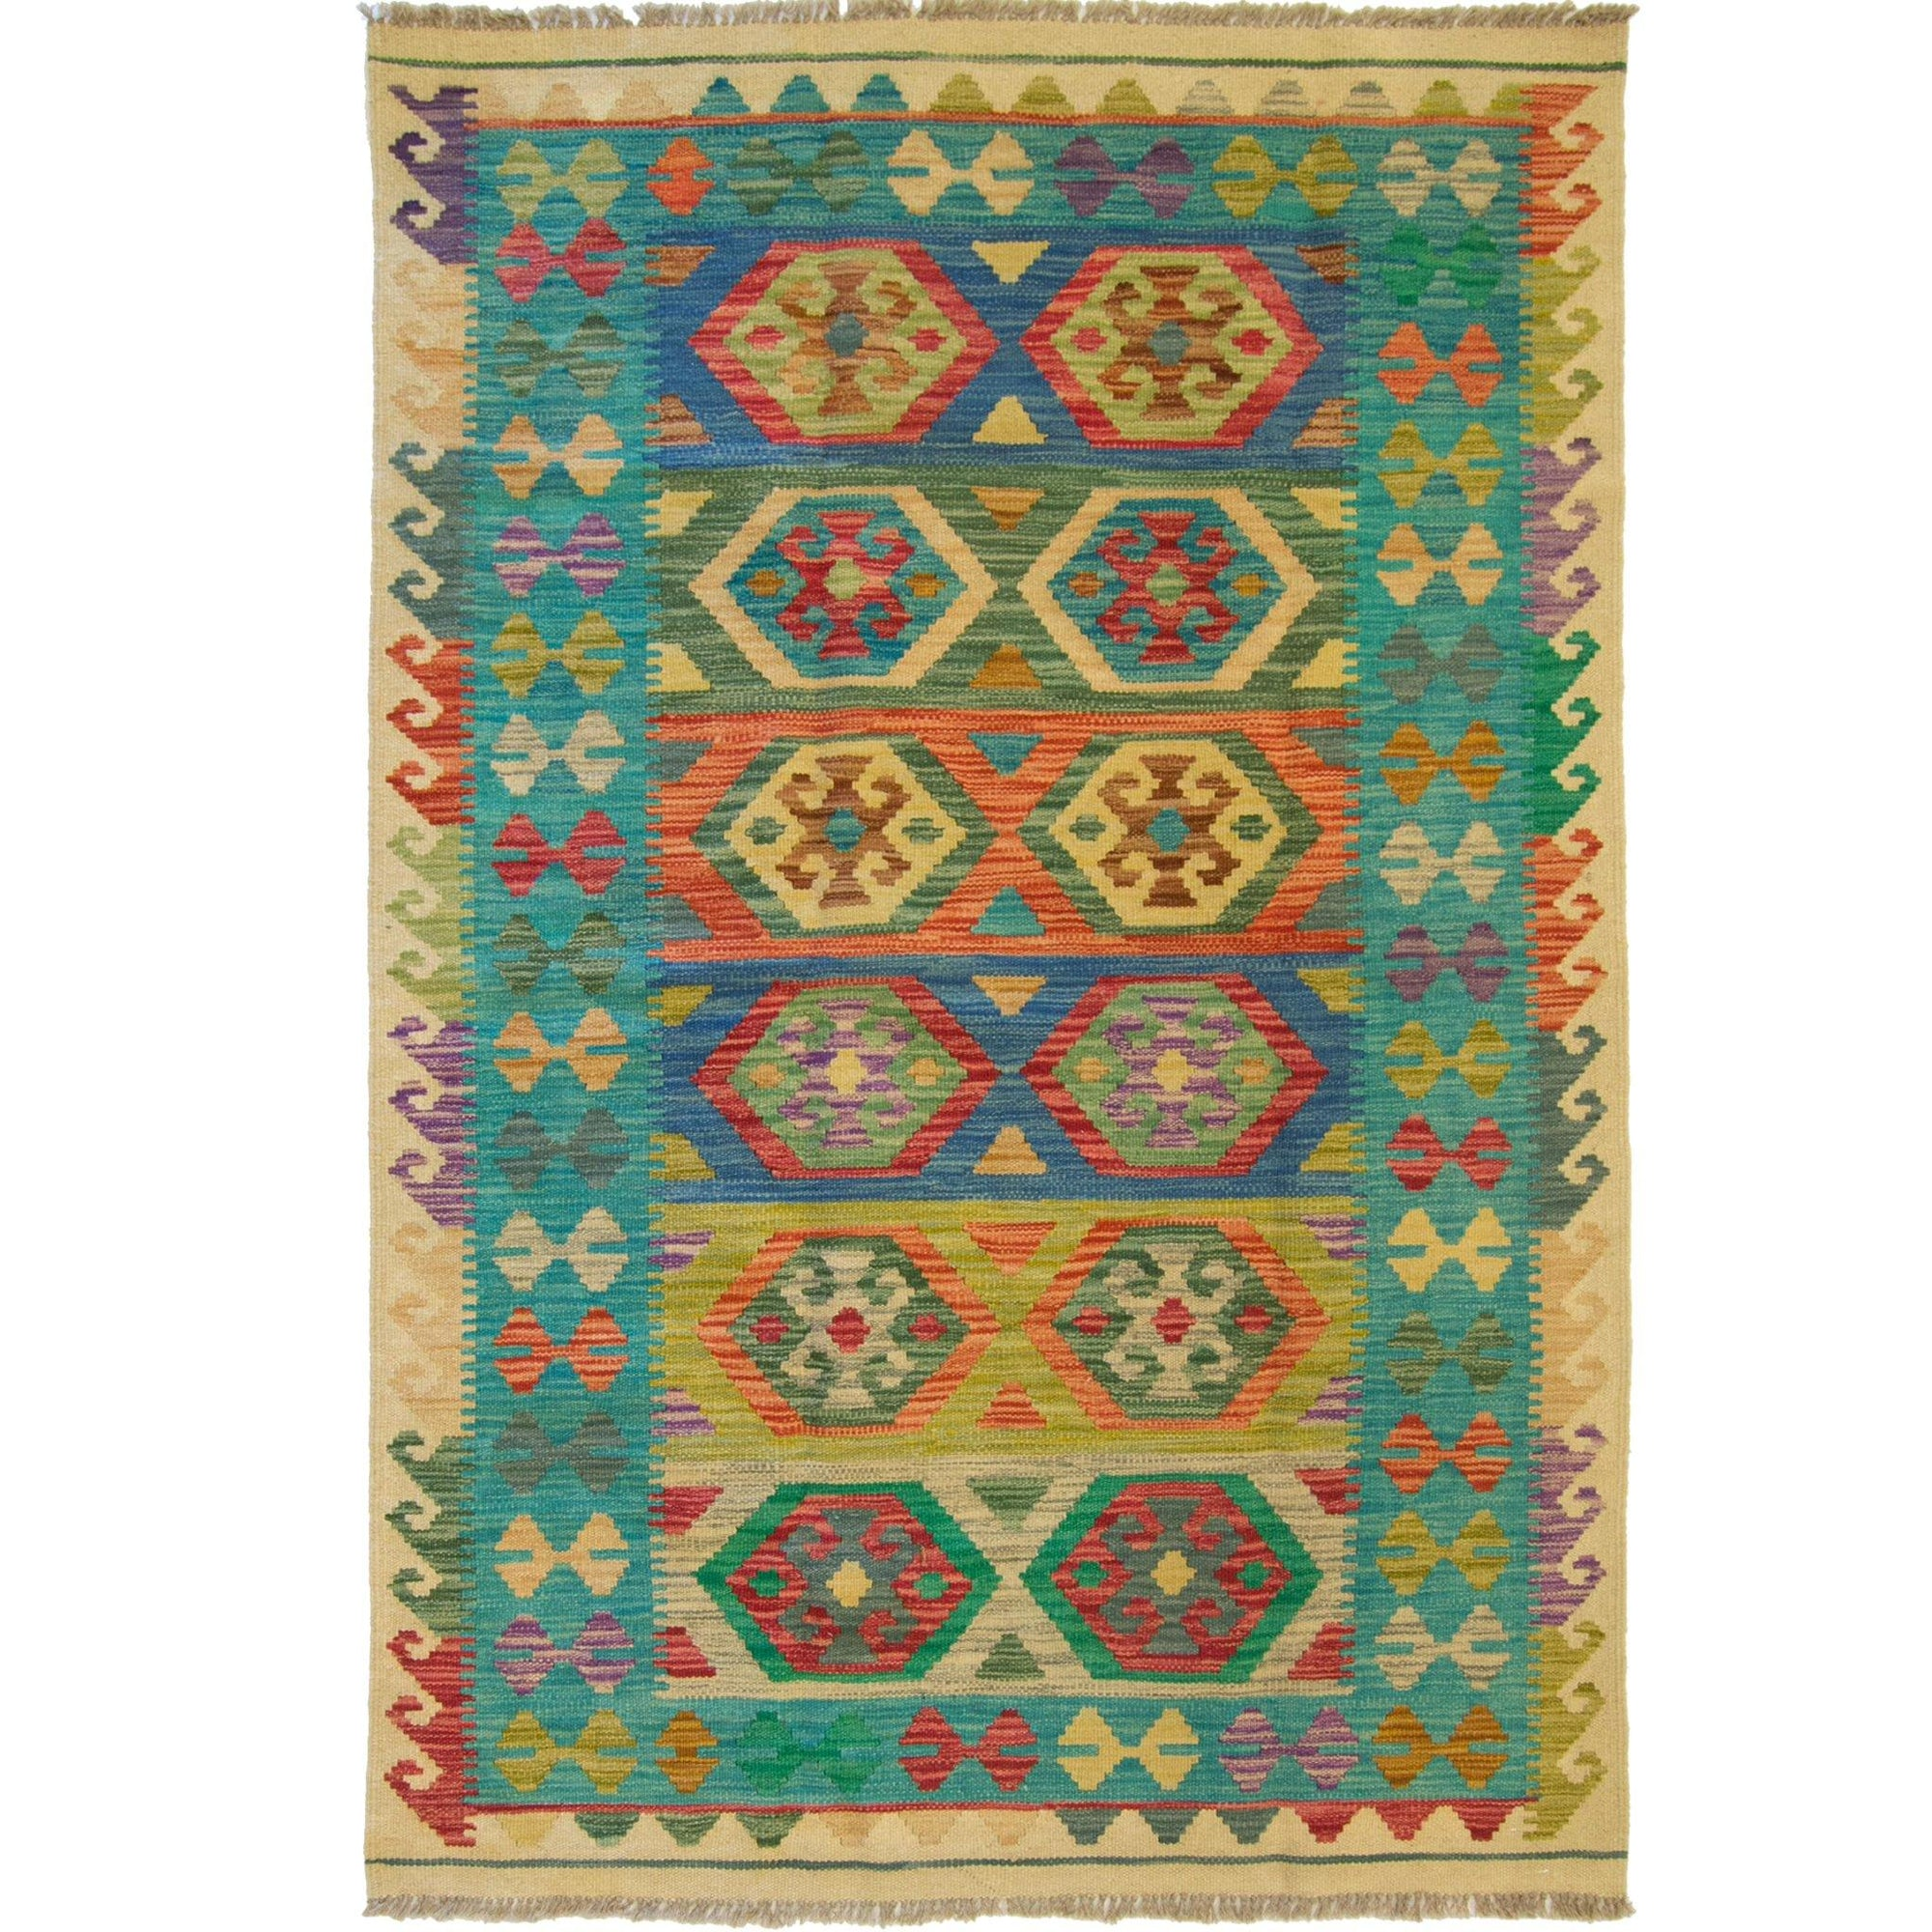 Hand-woven Afghan Chobi  Kilim Rug 124cm x 180cm Persian-Rug | House-of-Haghi | NewMarket | Auckland | NZ | Handmade Persian Rugs | Hand Knotted Persian Rugs